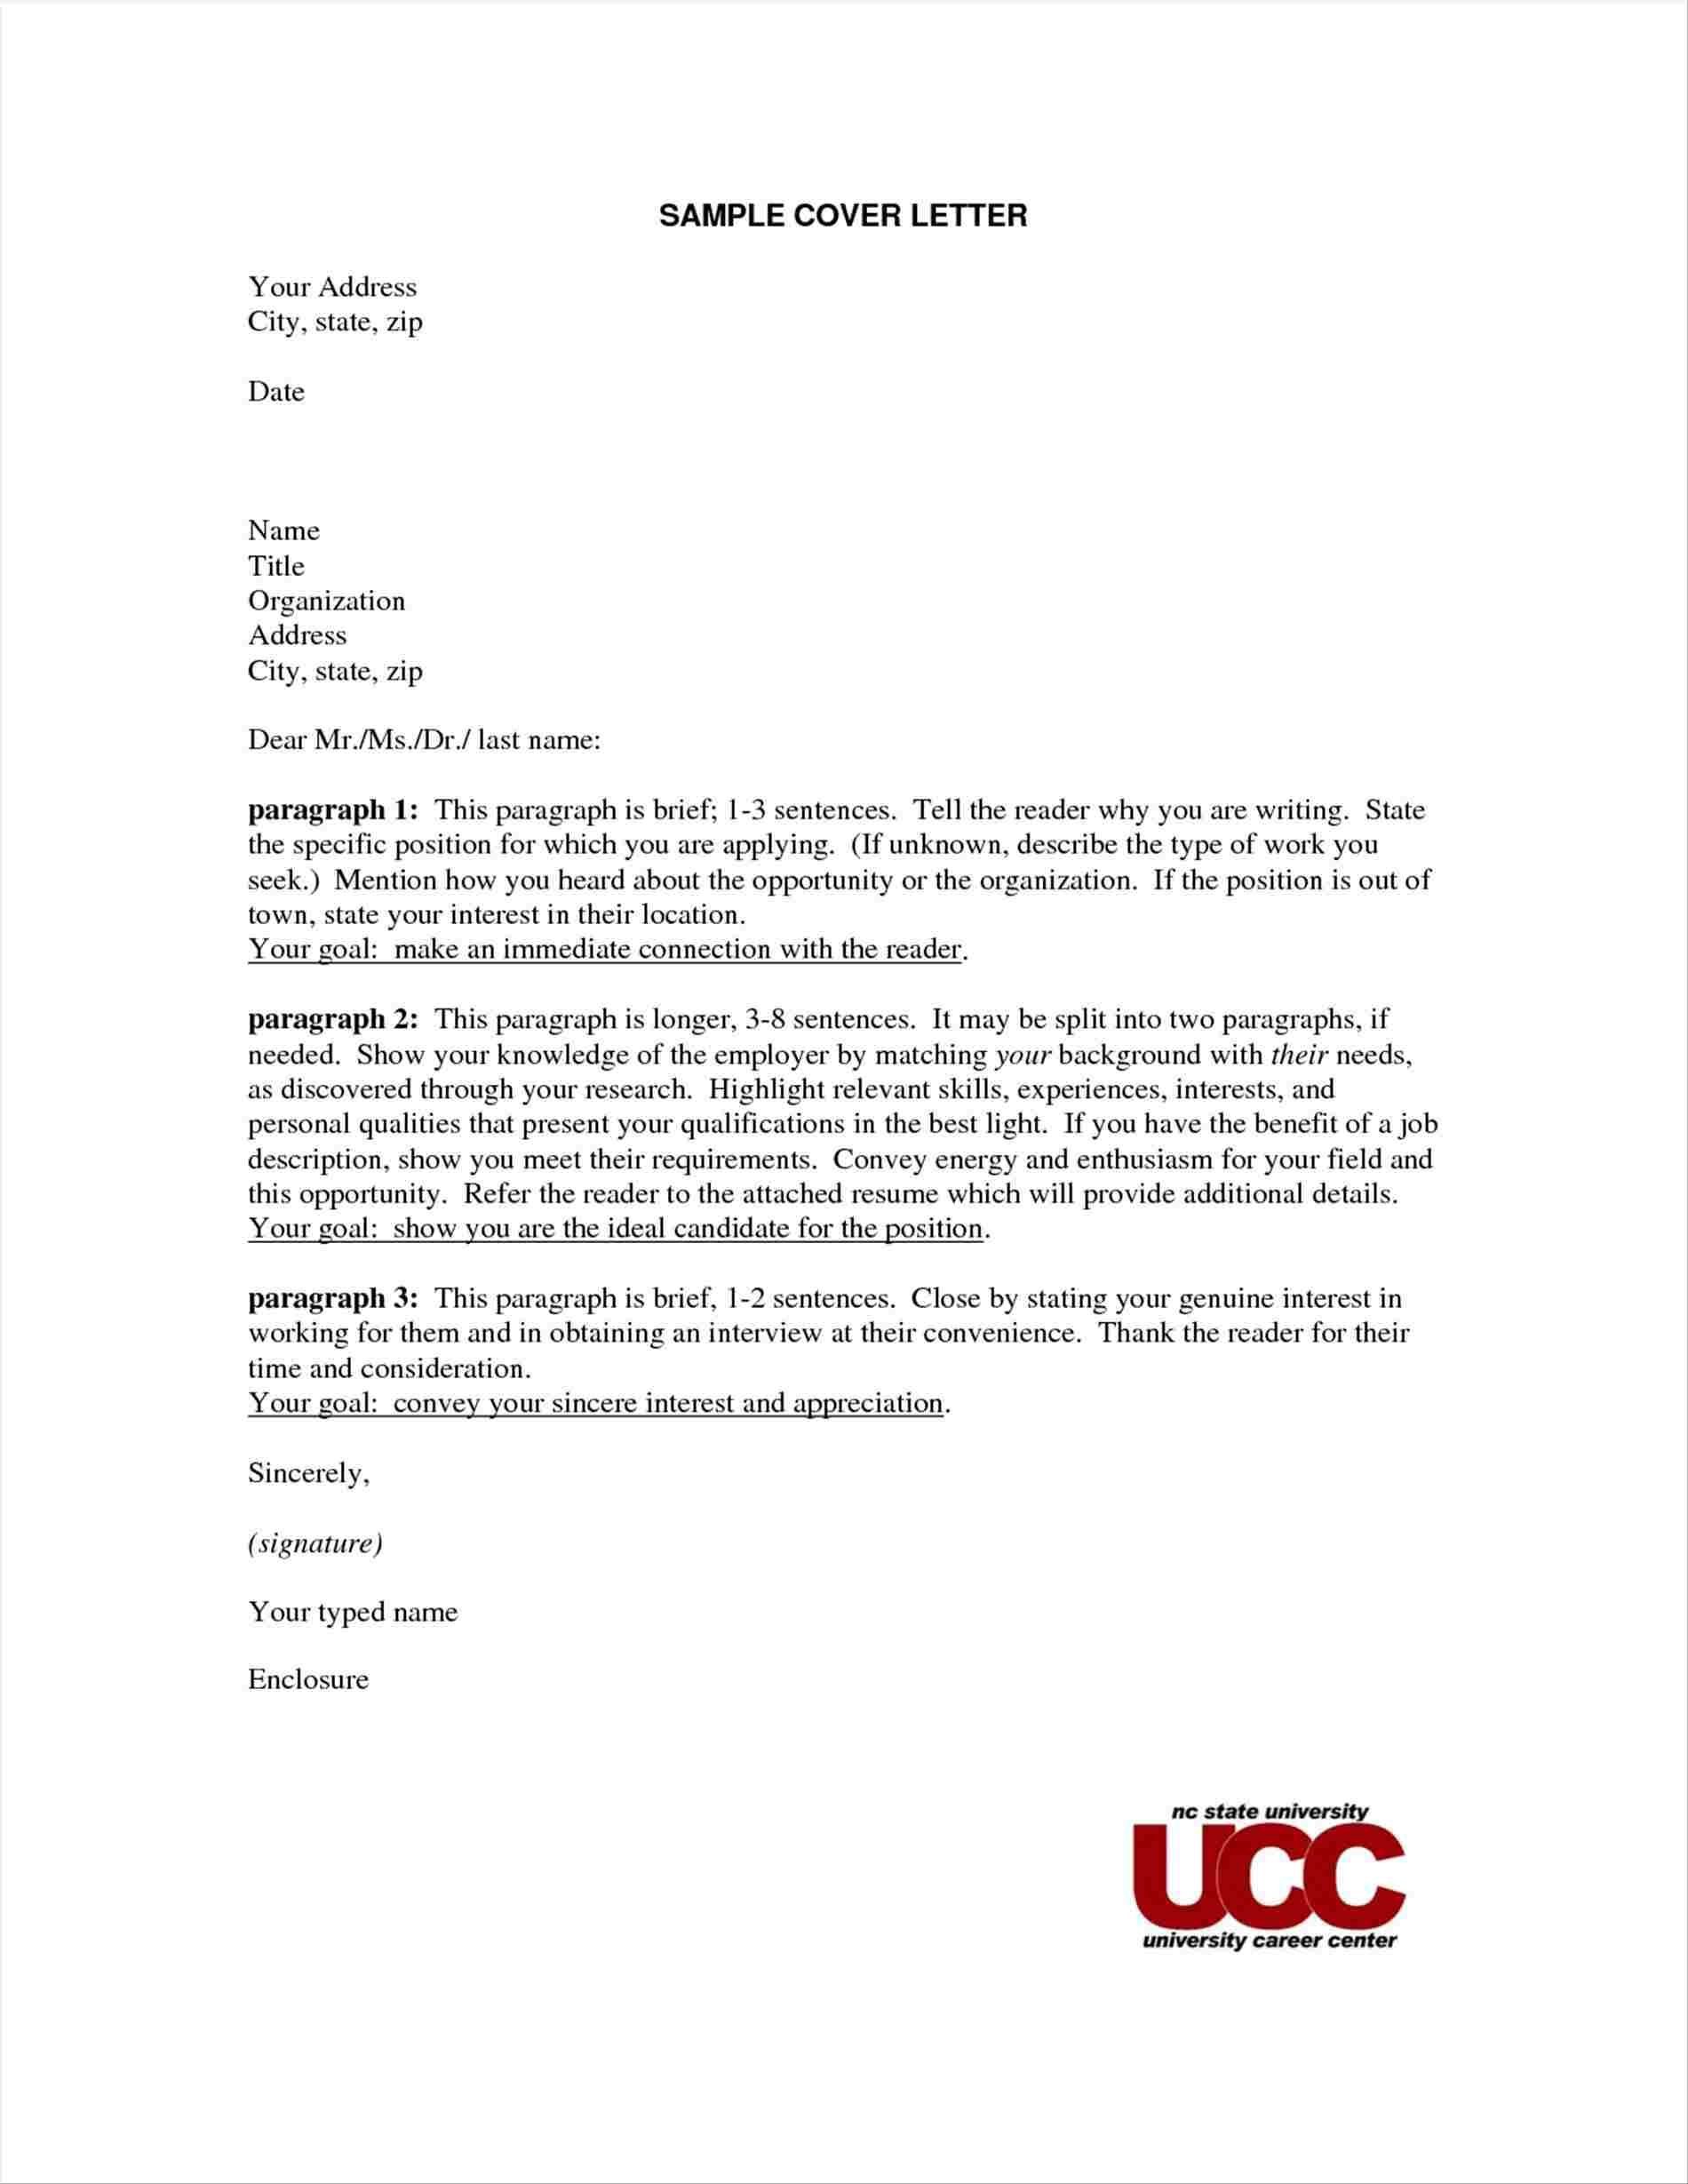 27 Cover Letter With No Name In